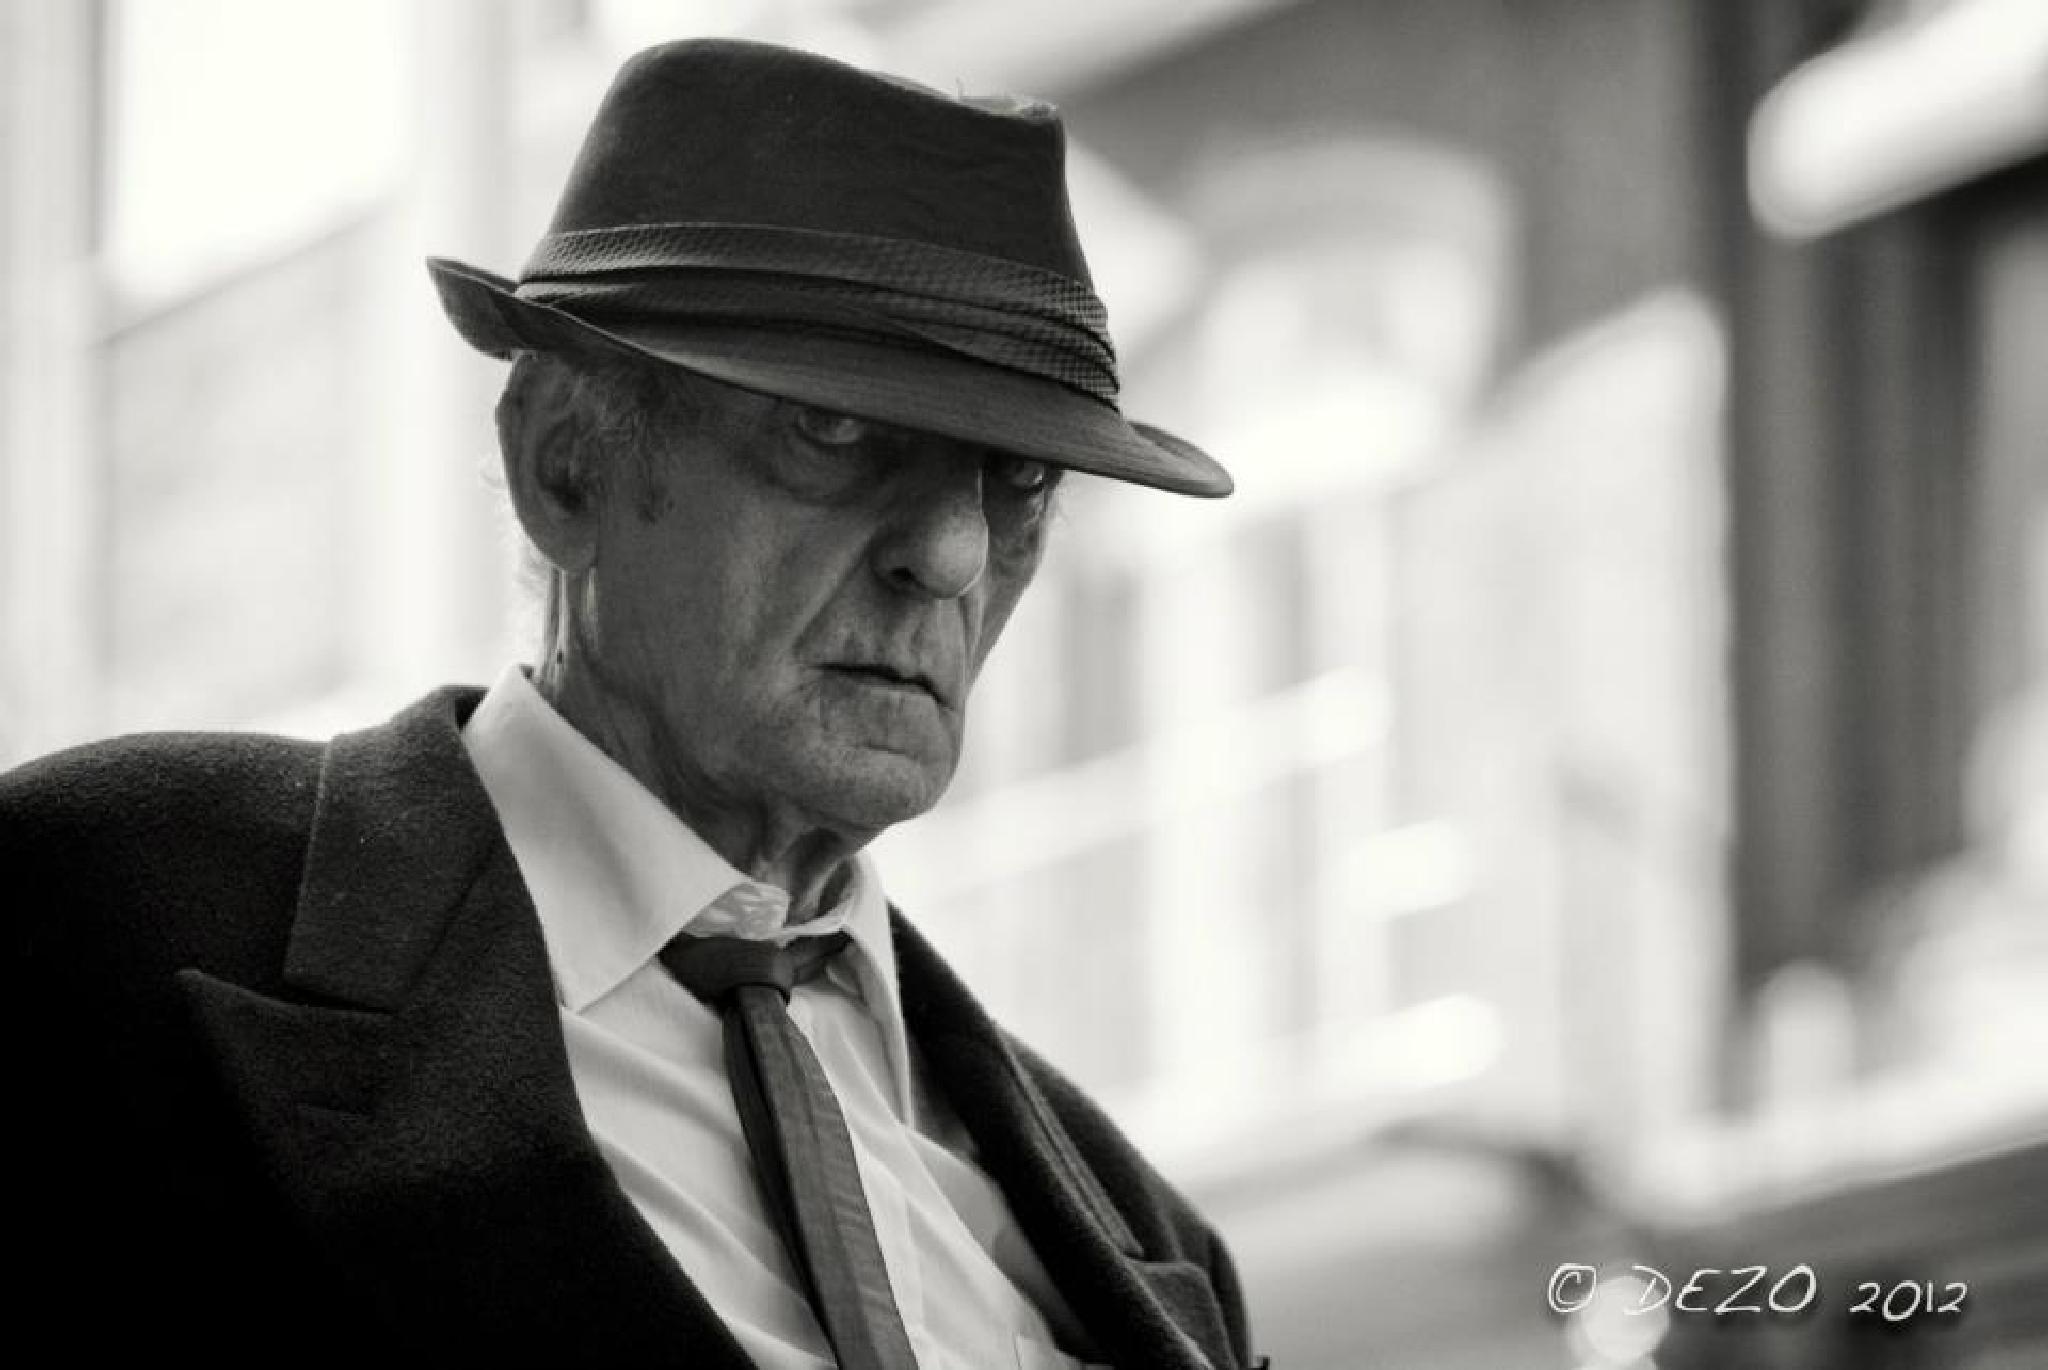 Eye contact by Luc Desormeaux Streetphotographer